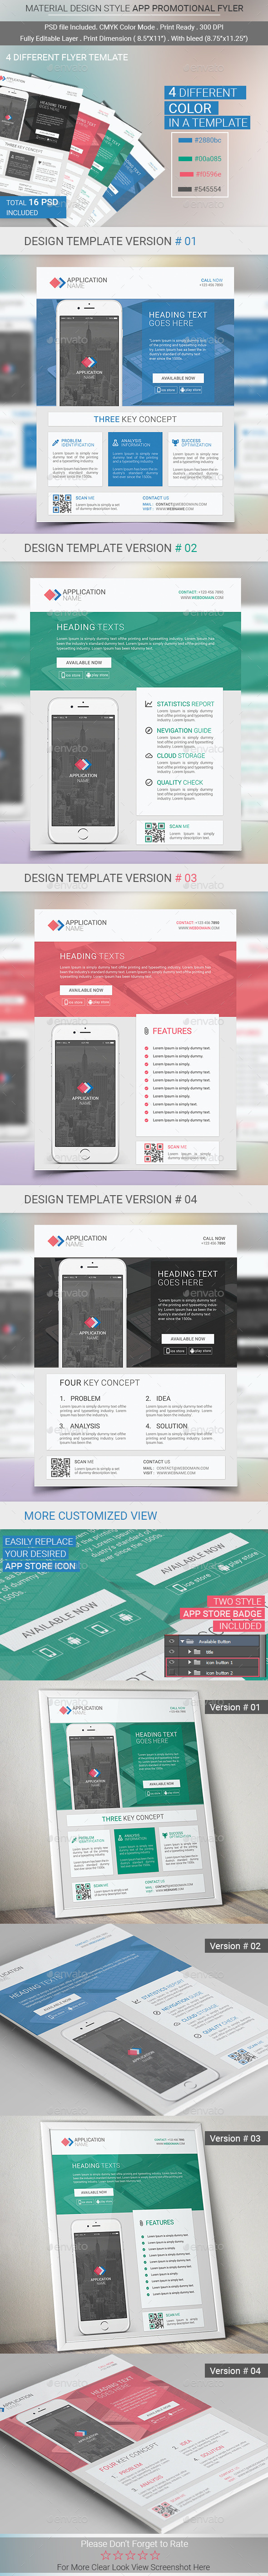 Material Design Mobile App Promotional Flyer - Commerce Flyers